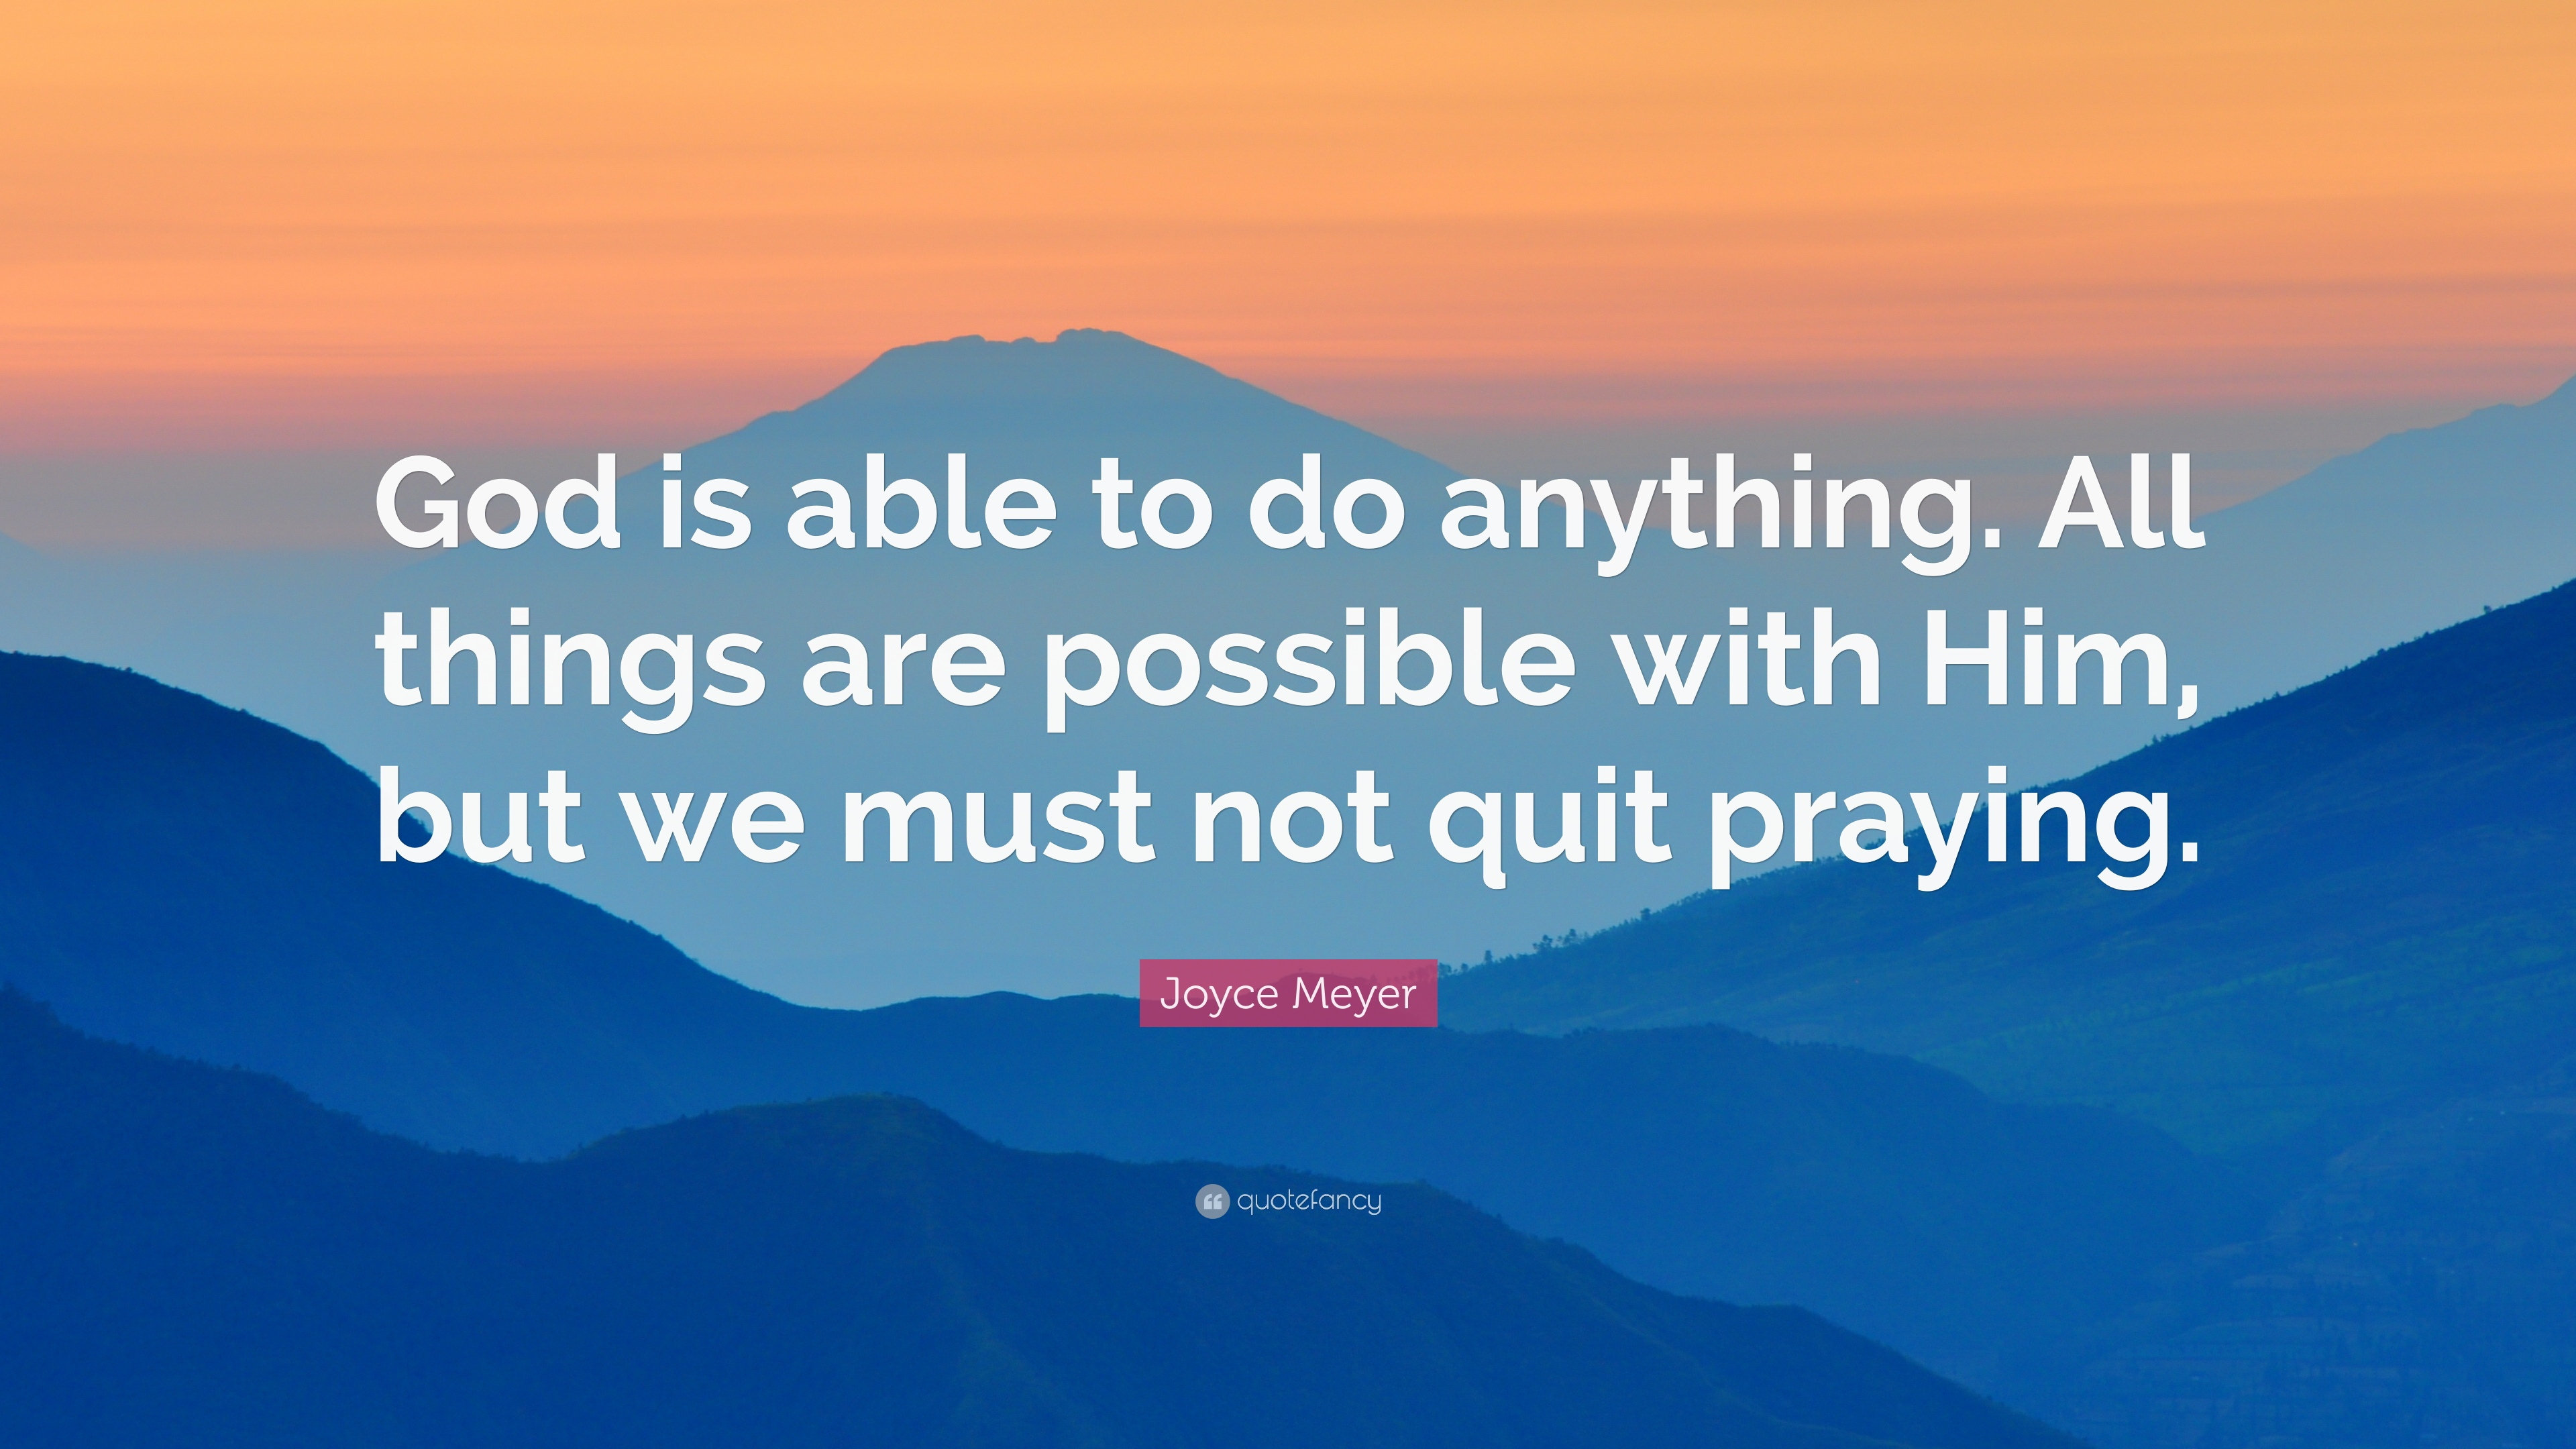 Joyce Meyer Quote: U201cGod Is Able To Do Anything. All Things Are Possible